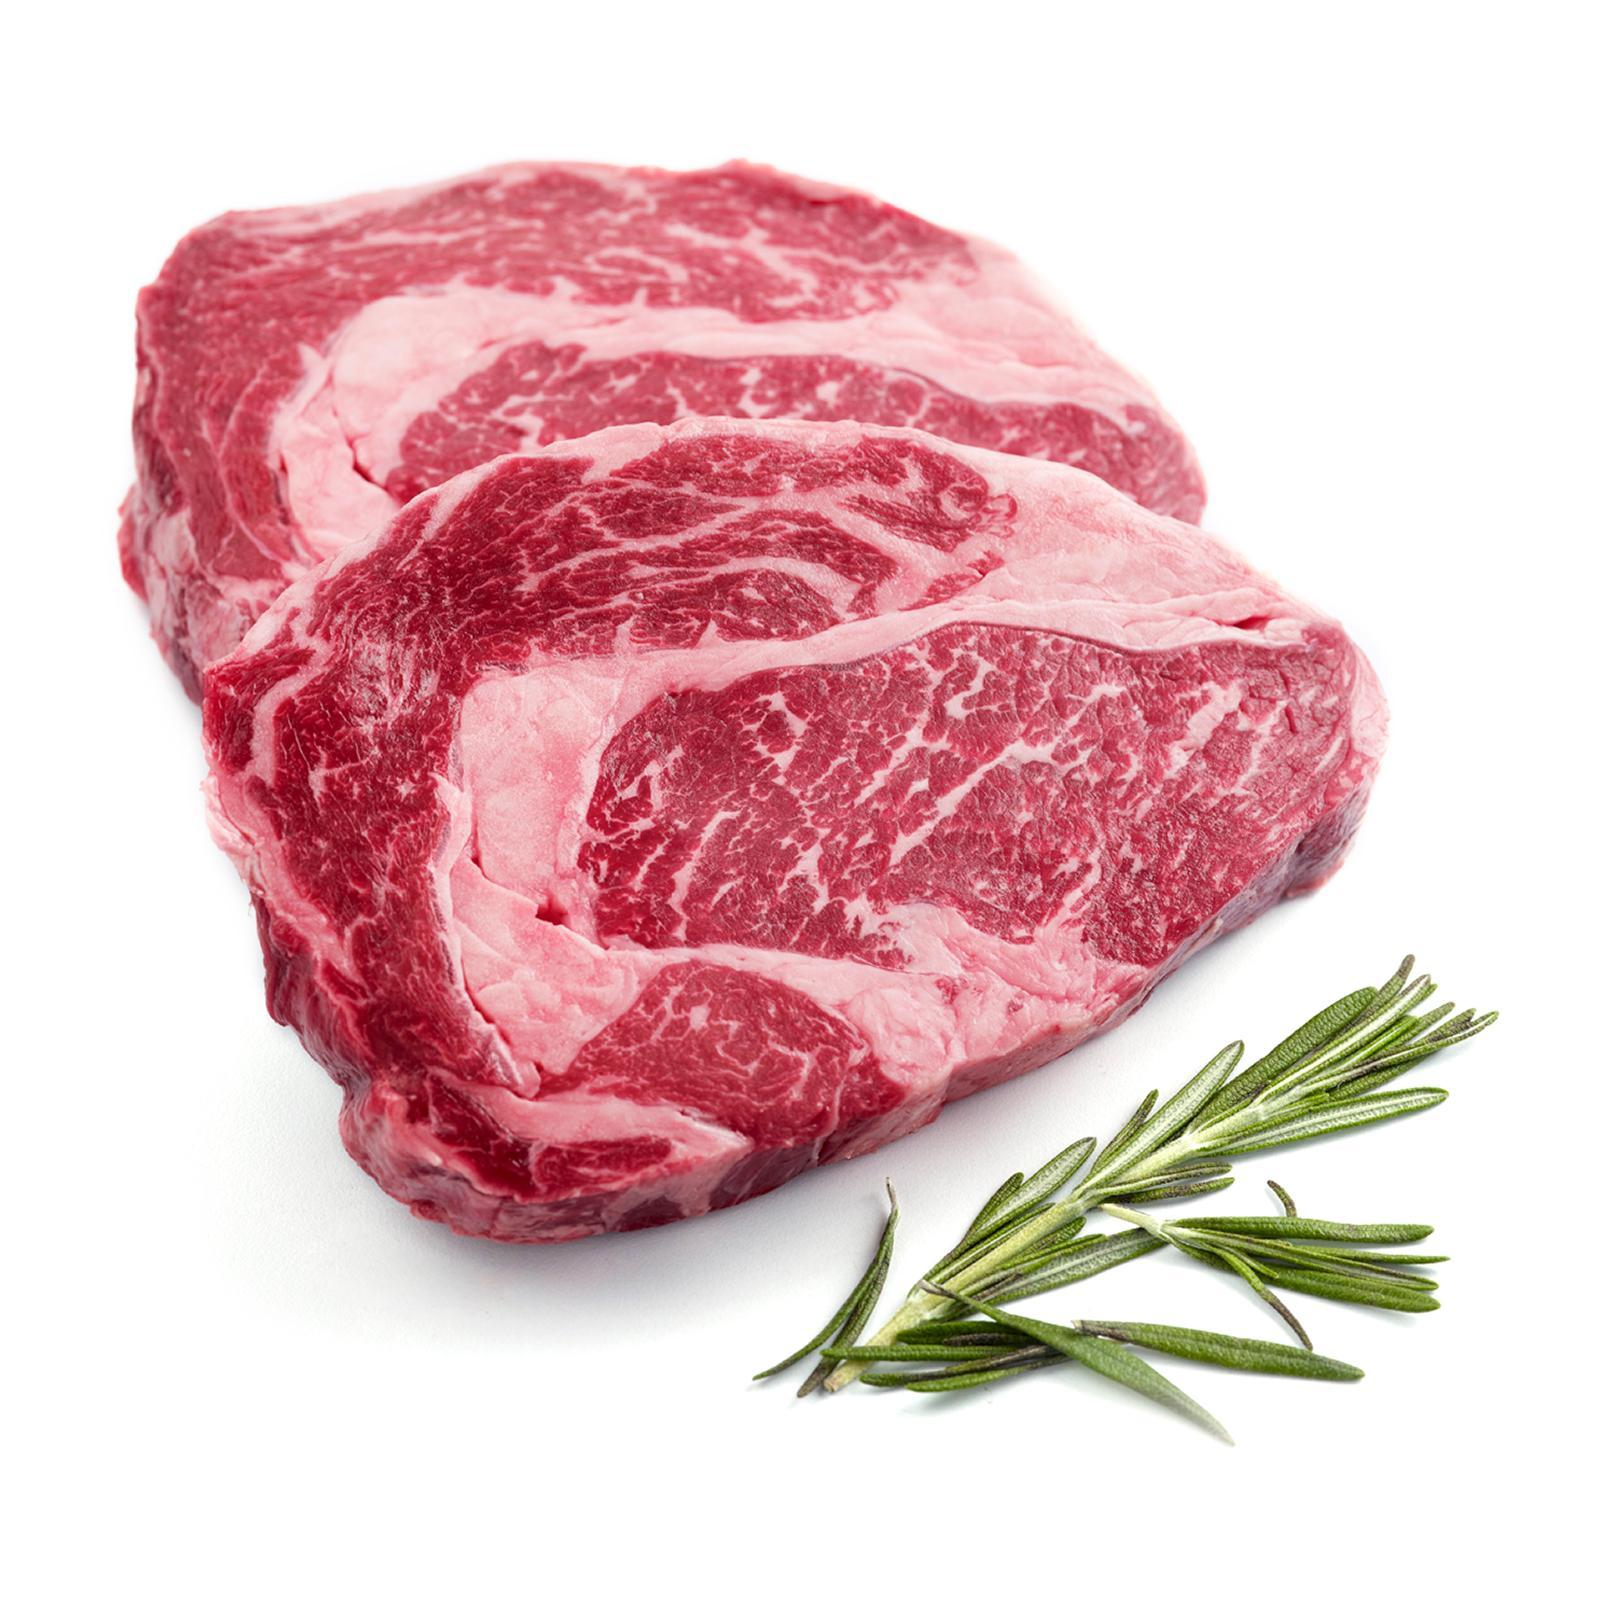 ZAC Butchery Wagyu Beef Rib-Eye Pack (MB 6-7)